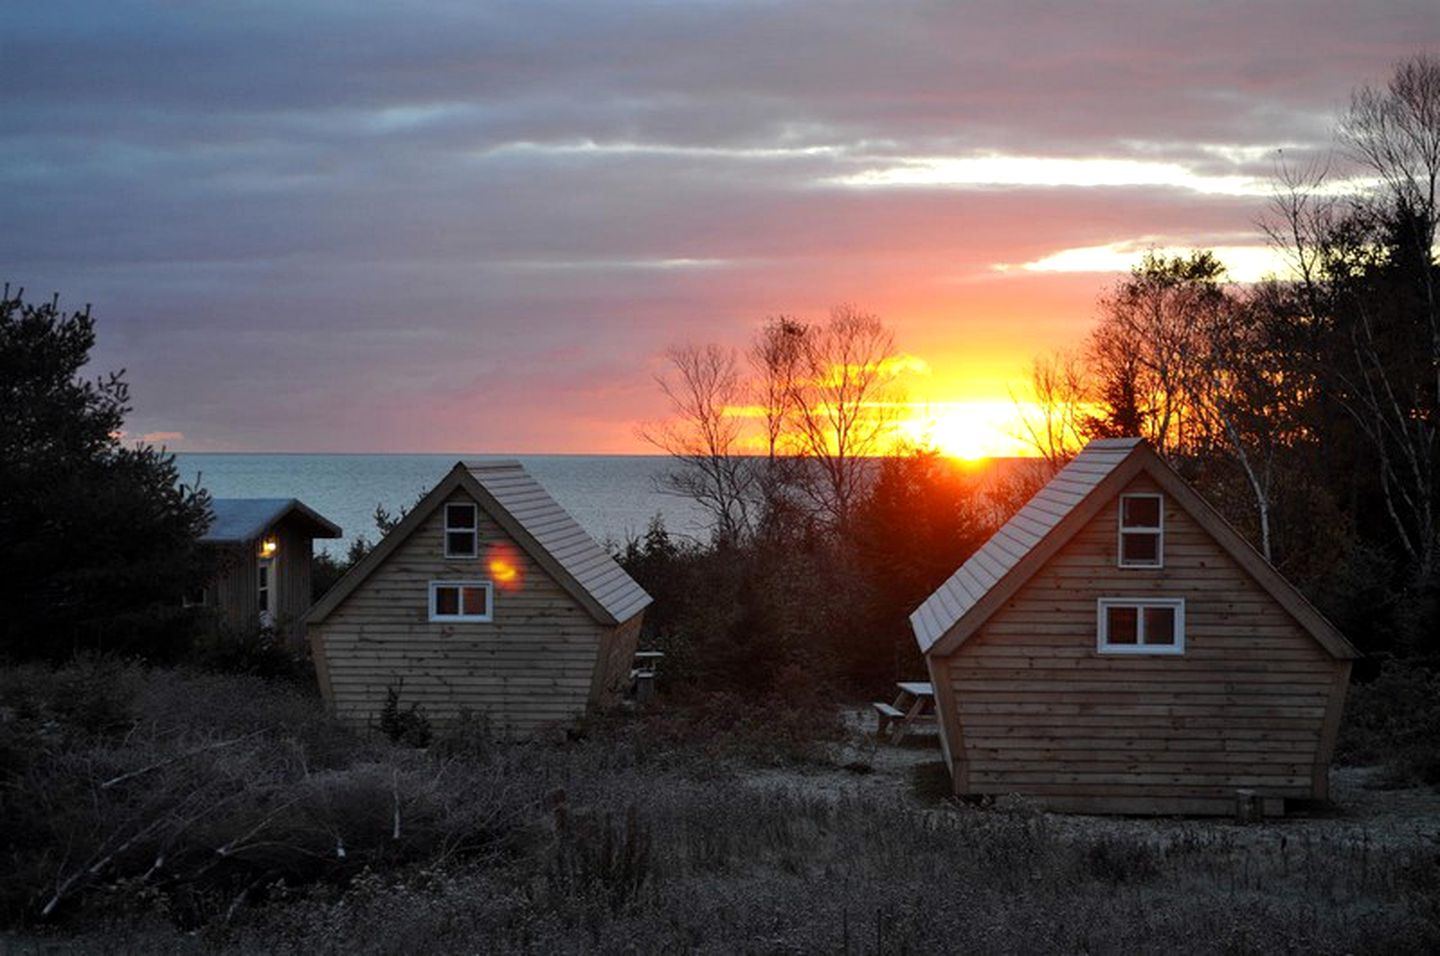 Cabins (Ingonish Beach, Nova Scotia, Canada)